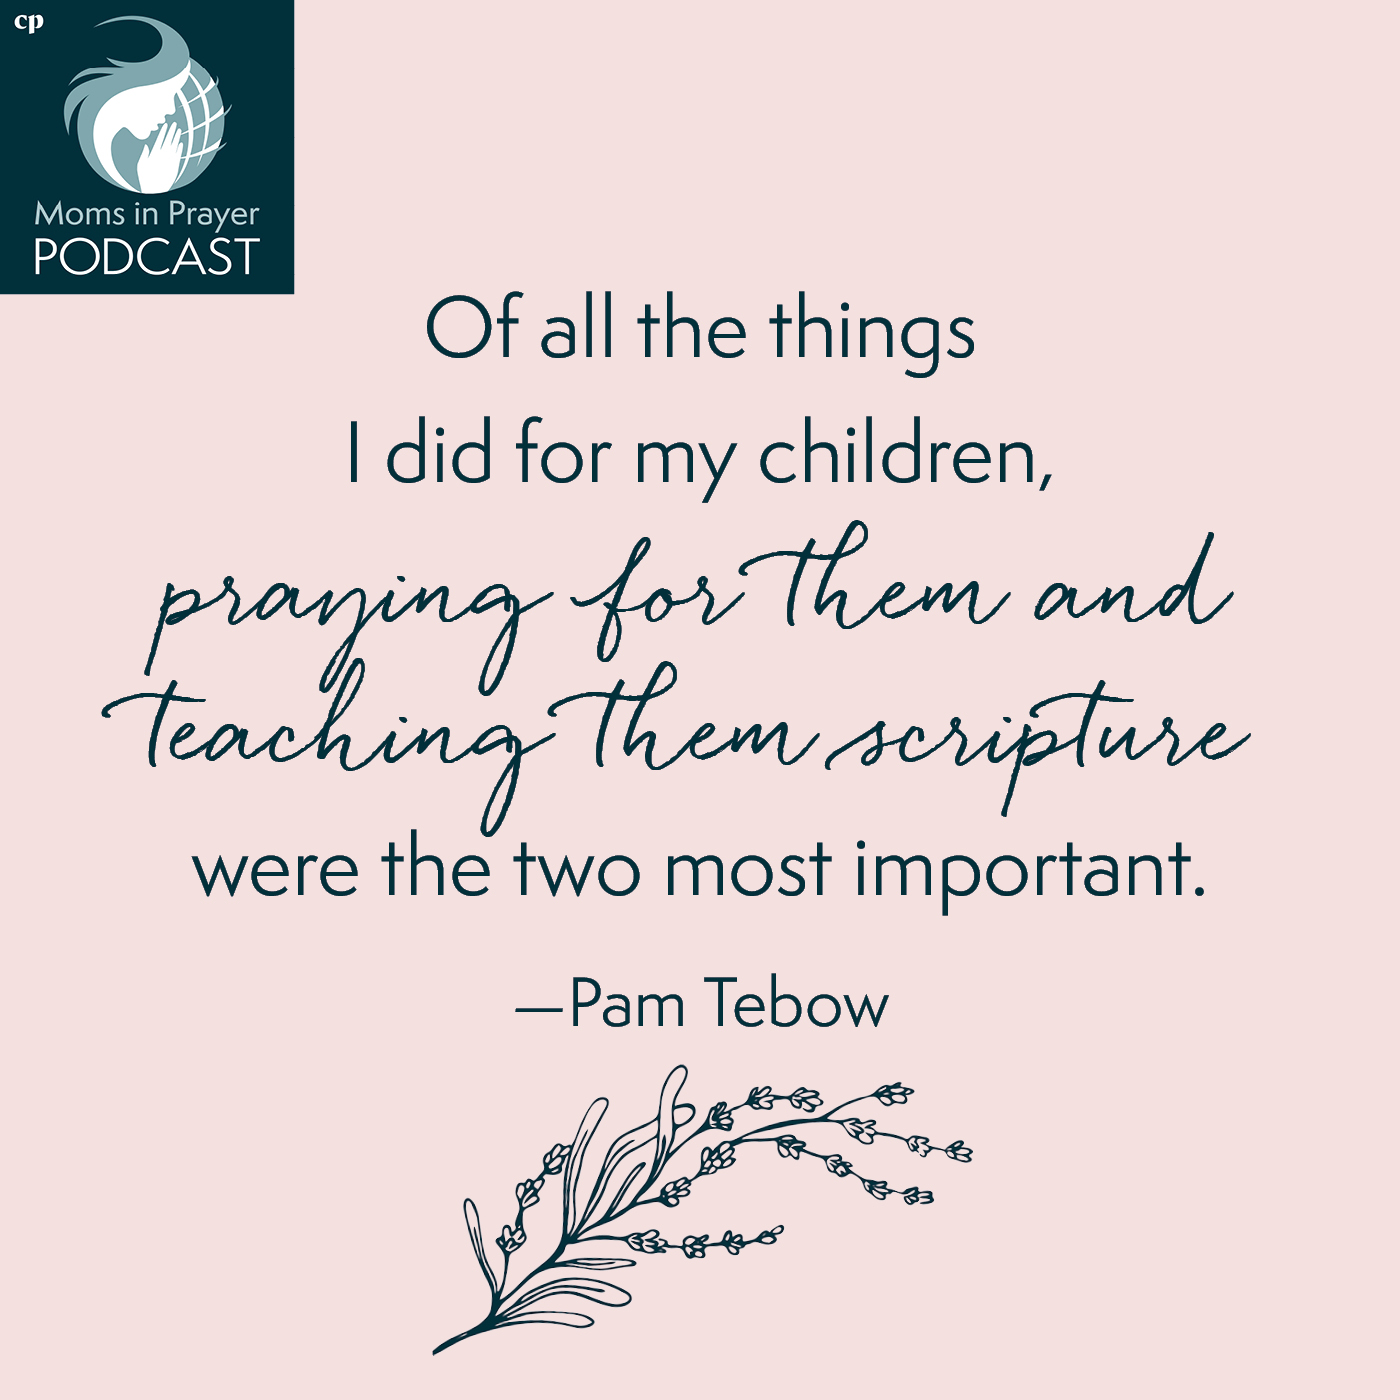 A mom's influence on her children in prayer & teaching God's Word - Pam Tebow